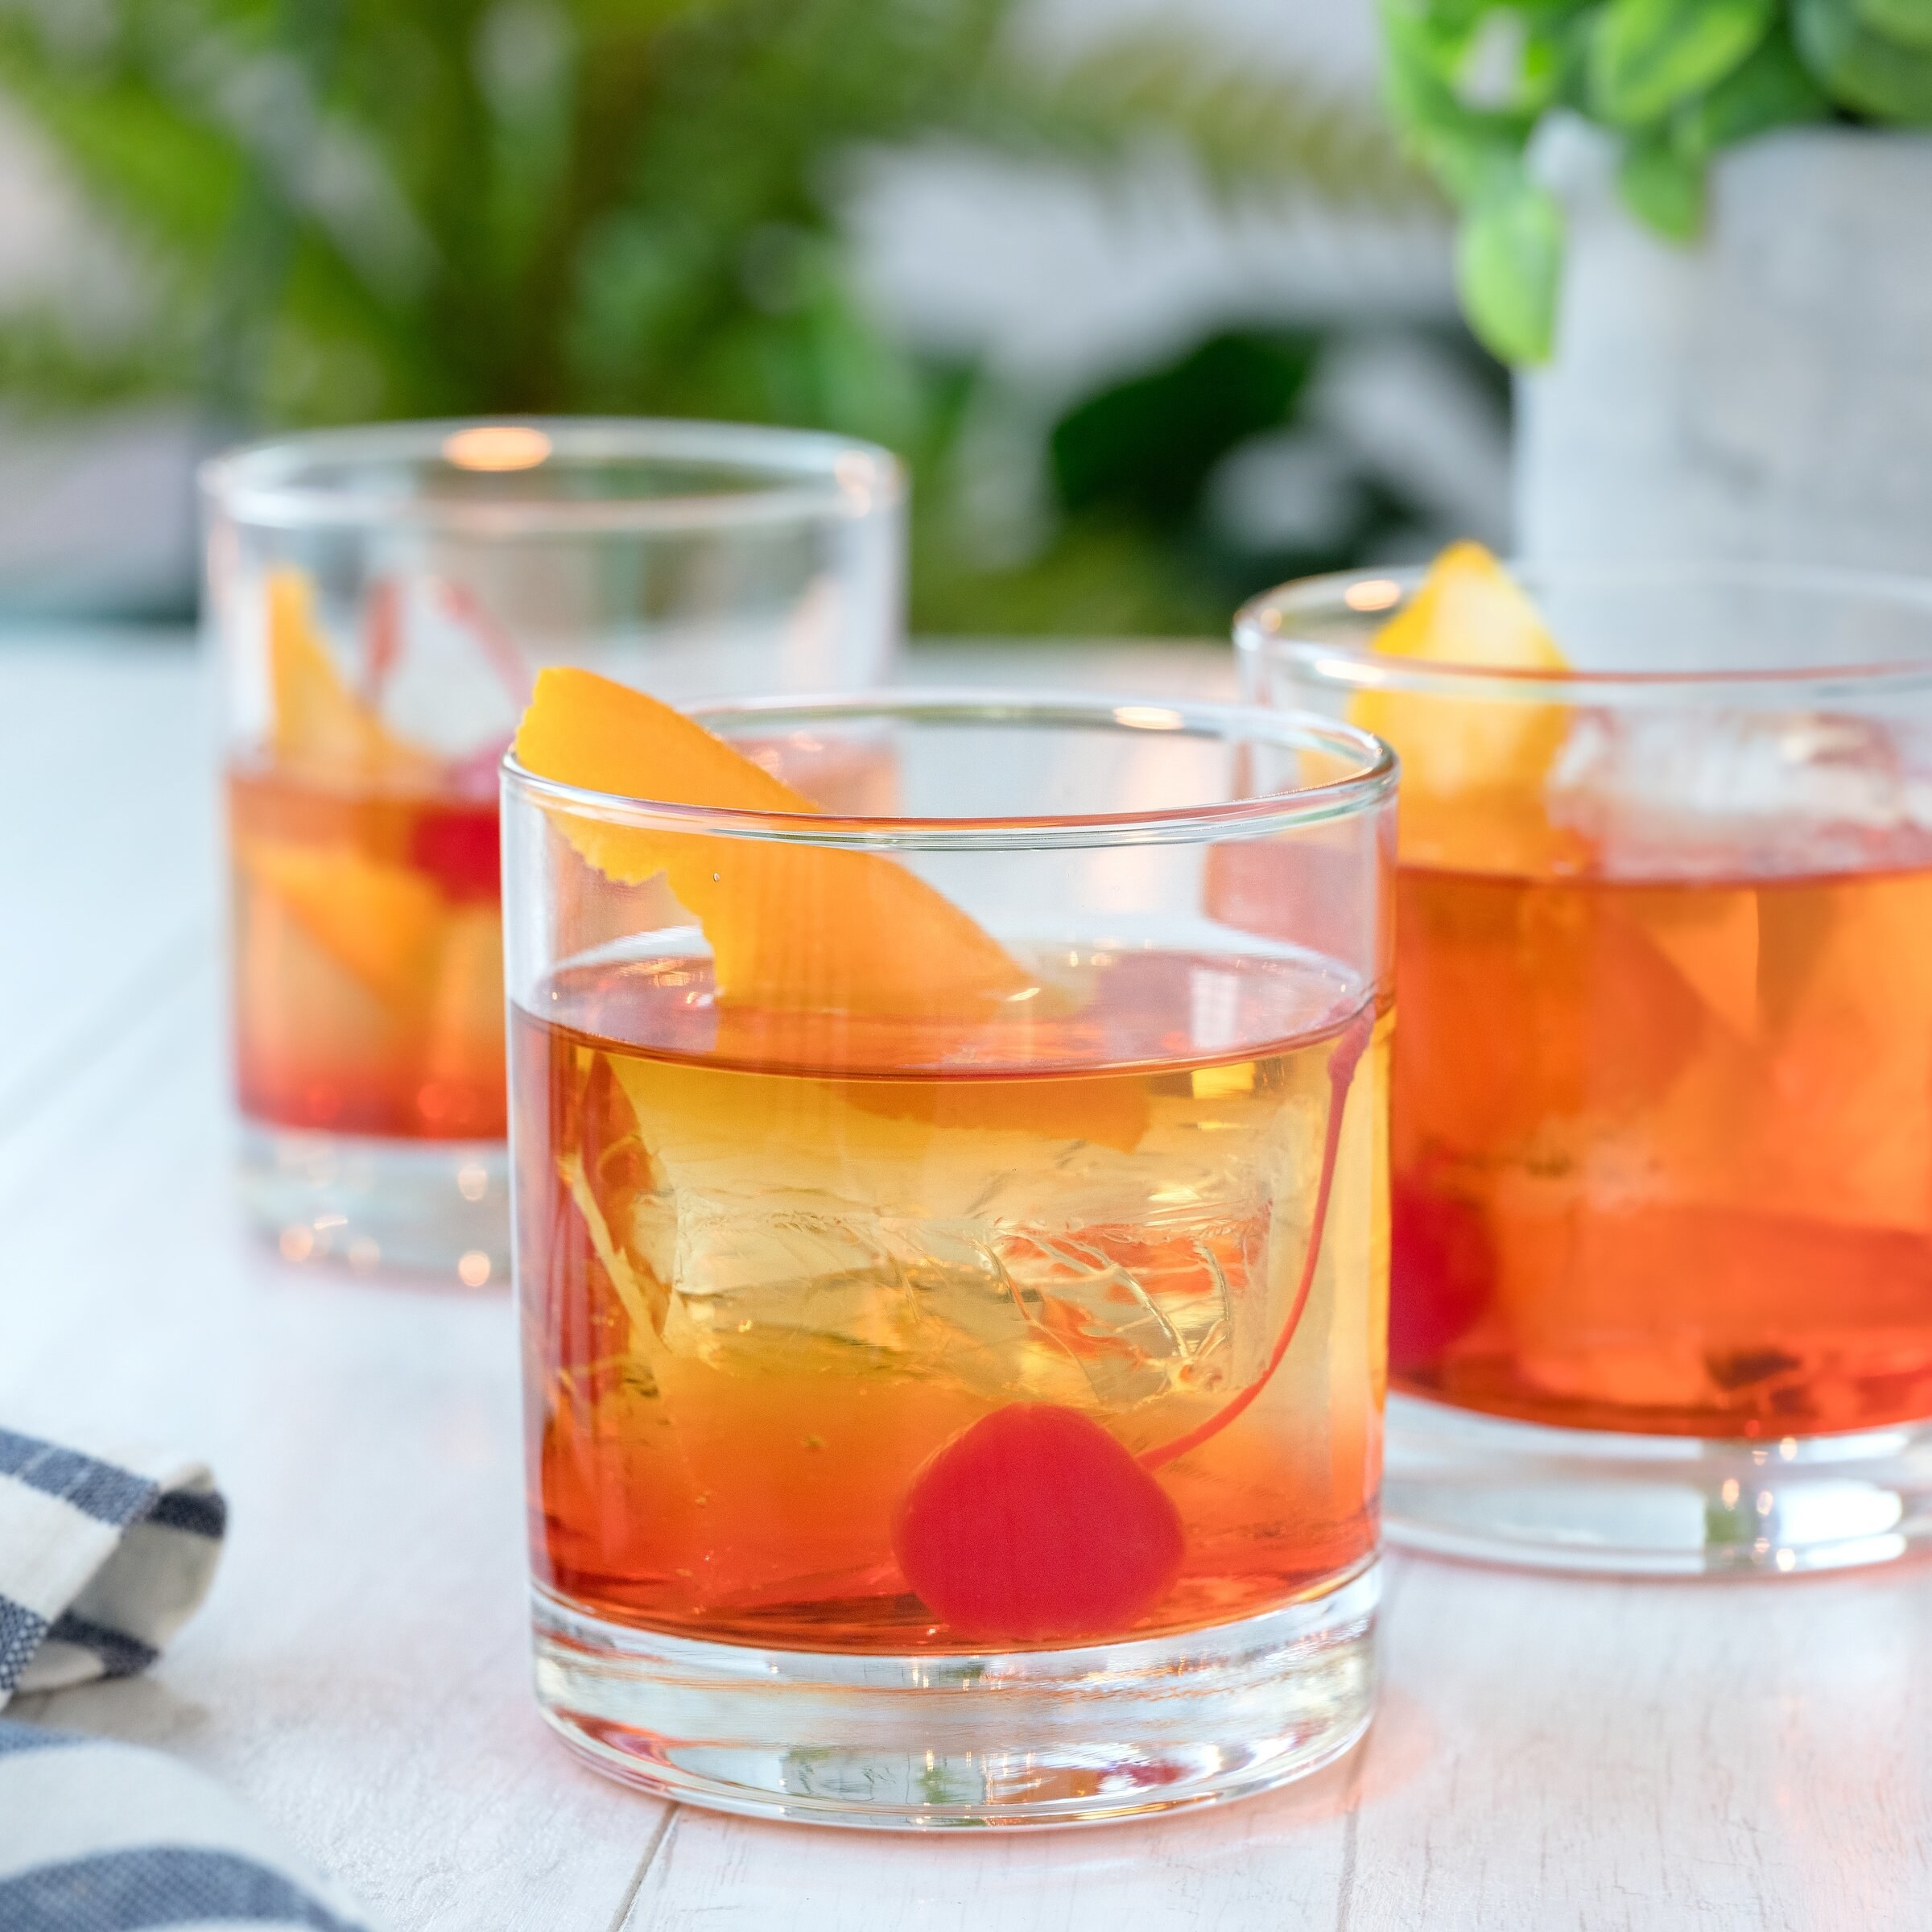 The glasses with fancy orange cocktails in them on an outdoor table